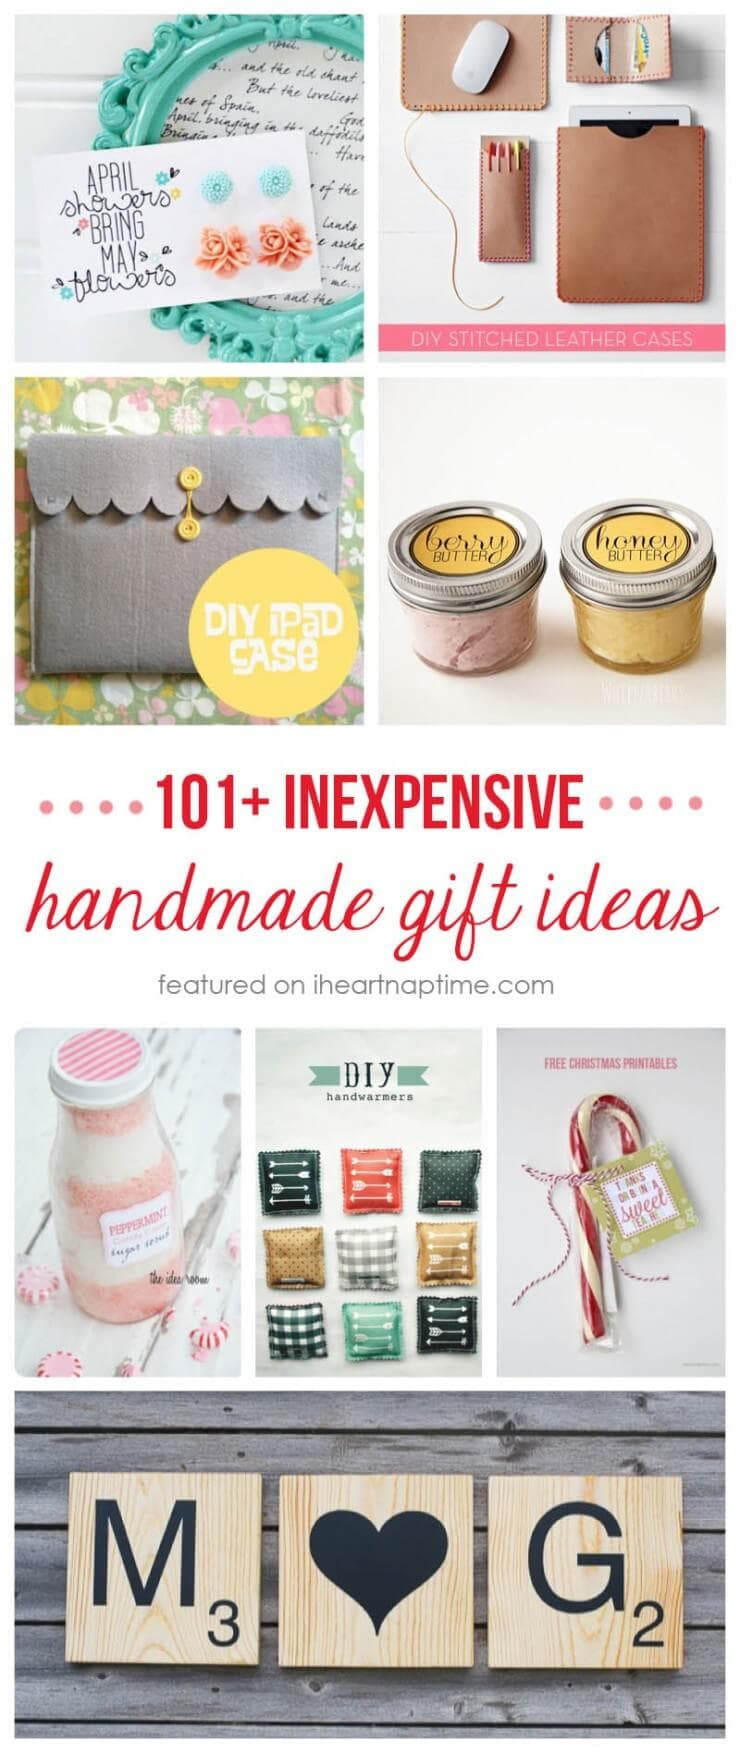 Easy Christmas Gift Ideas  50 homemade t ideas to make for under $5 I Heart Nap Time